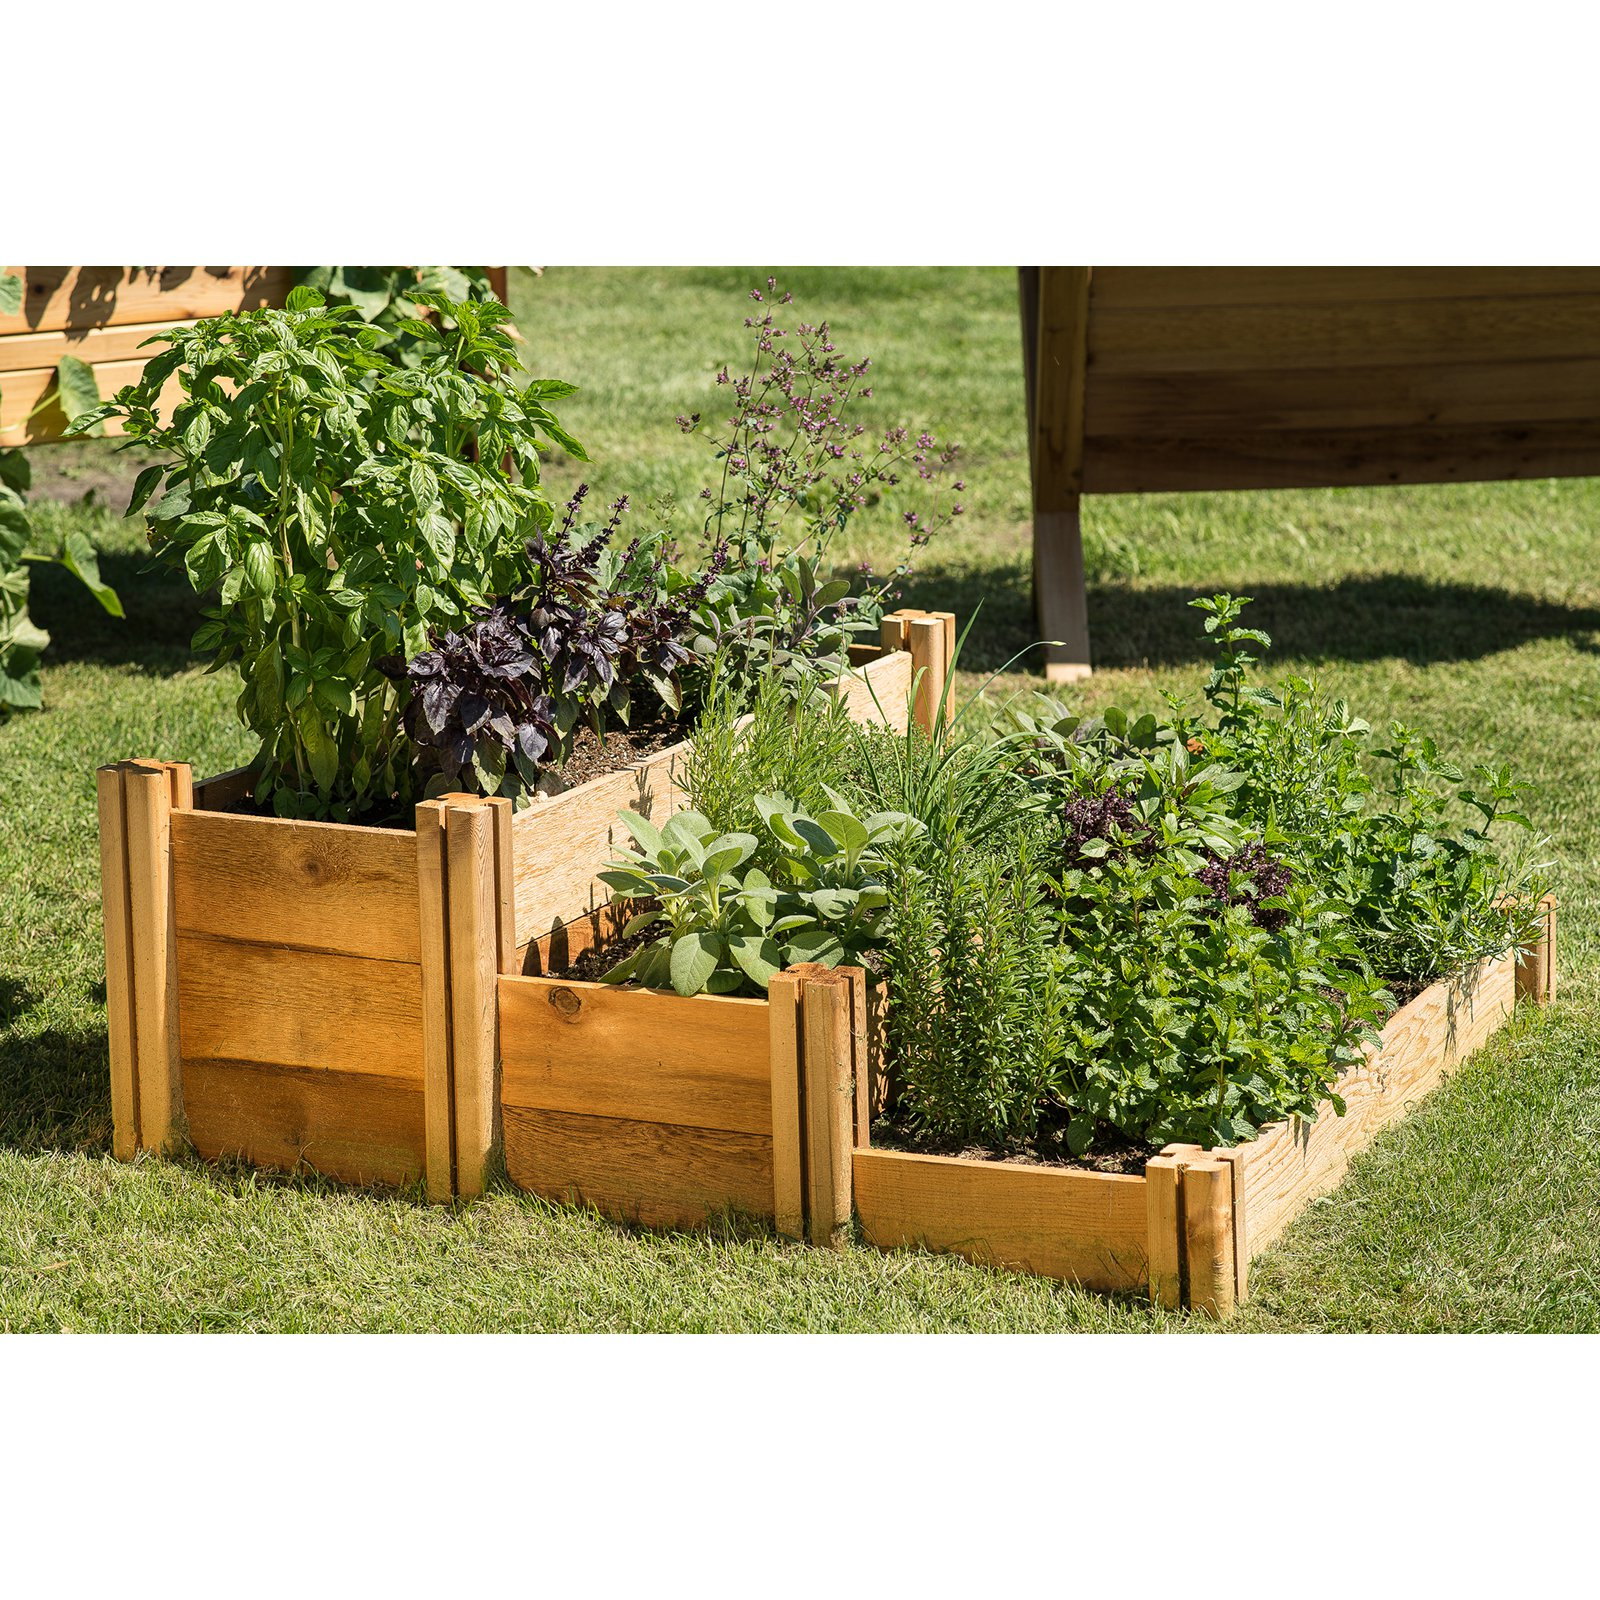 Gronomics Multi-Level Rustic Raised Garden Bed